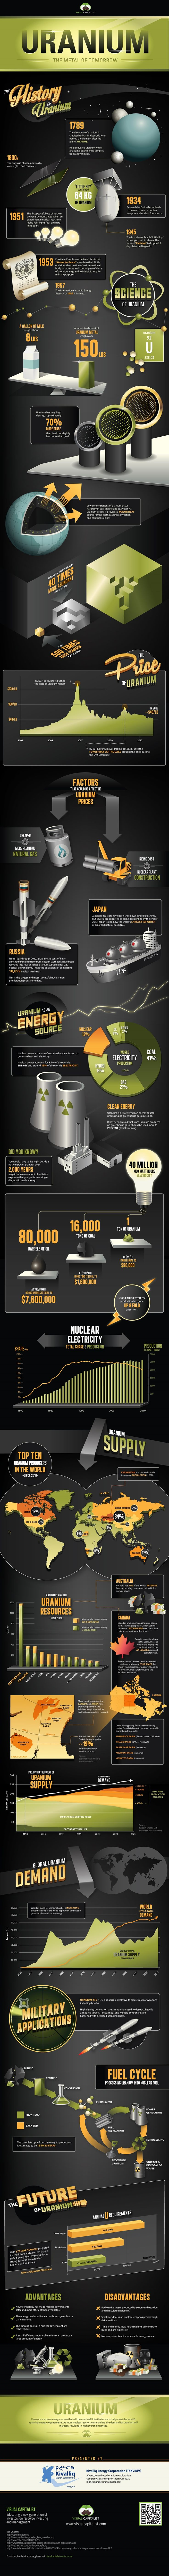 best ideas about nuclear power nuclear energy nuclear power is a clean energy source that will be used well into the future to help meet the world s growing energy requirements